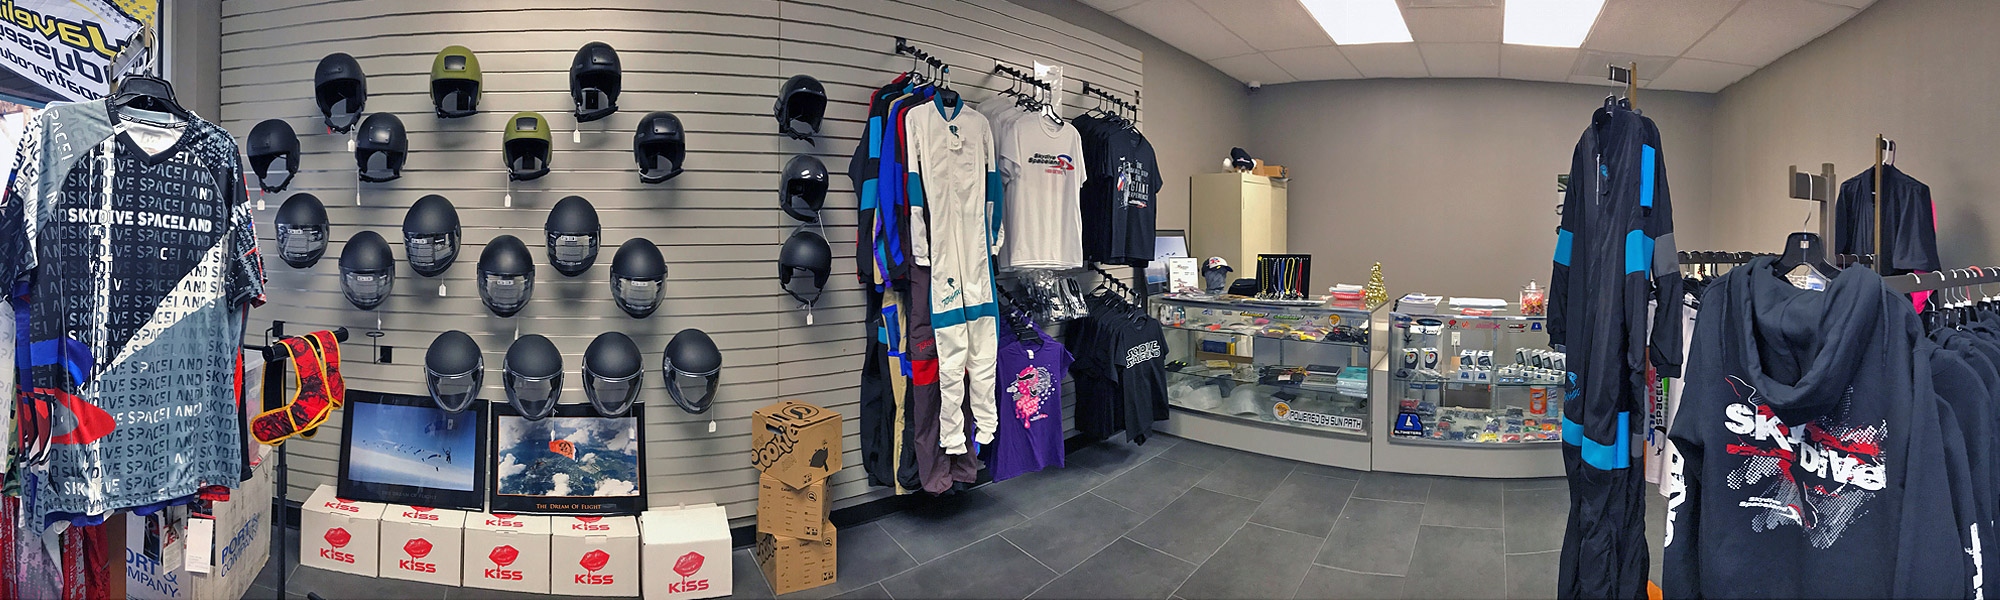 Skydive Spaceland Dallas Pro Shop